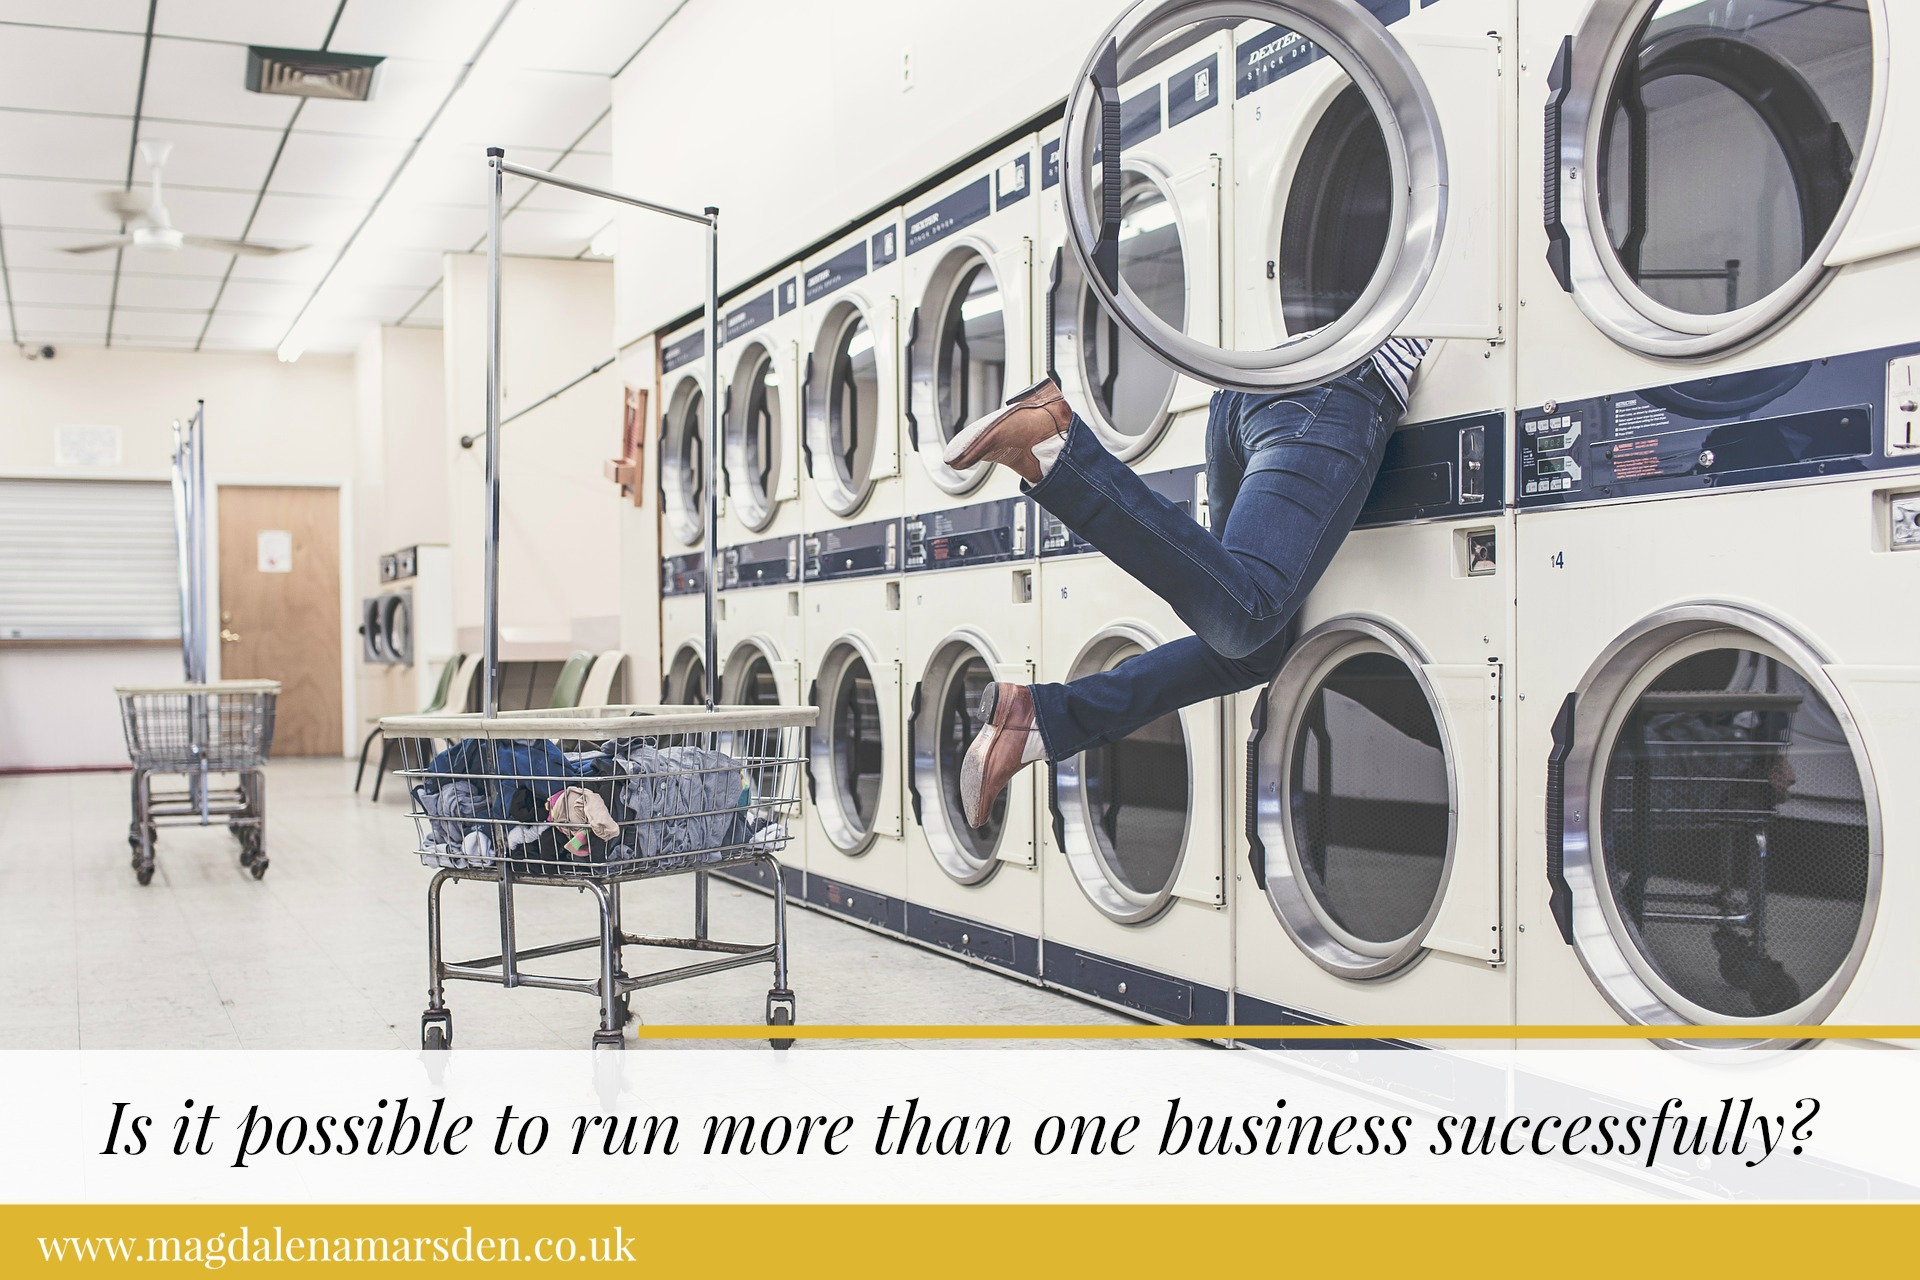 How tIs it possible to run more than one businesses successfully